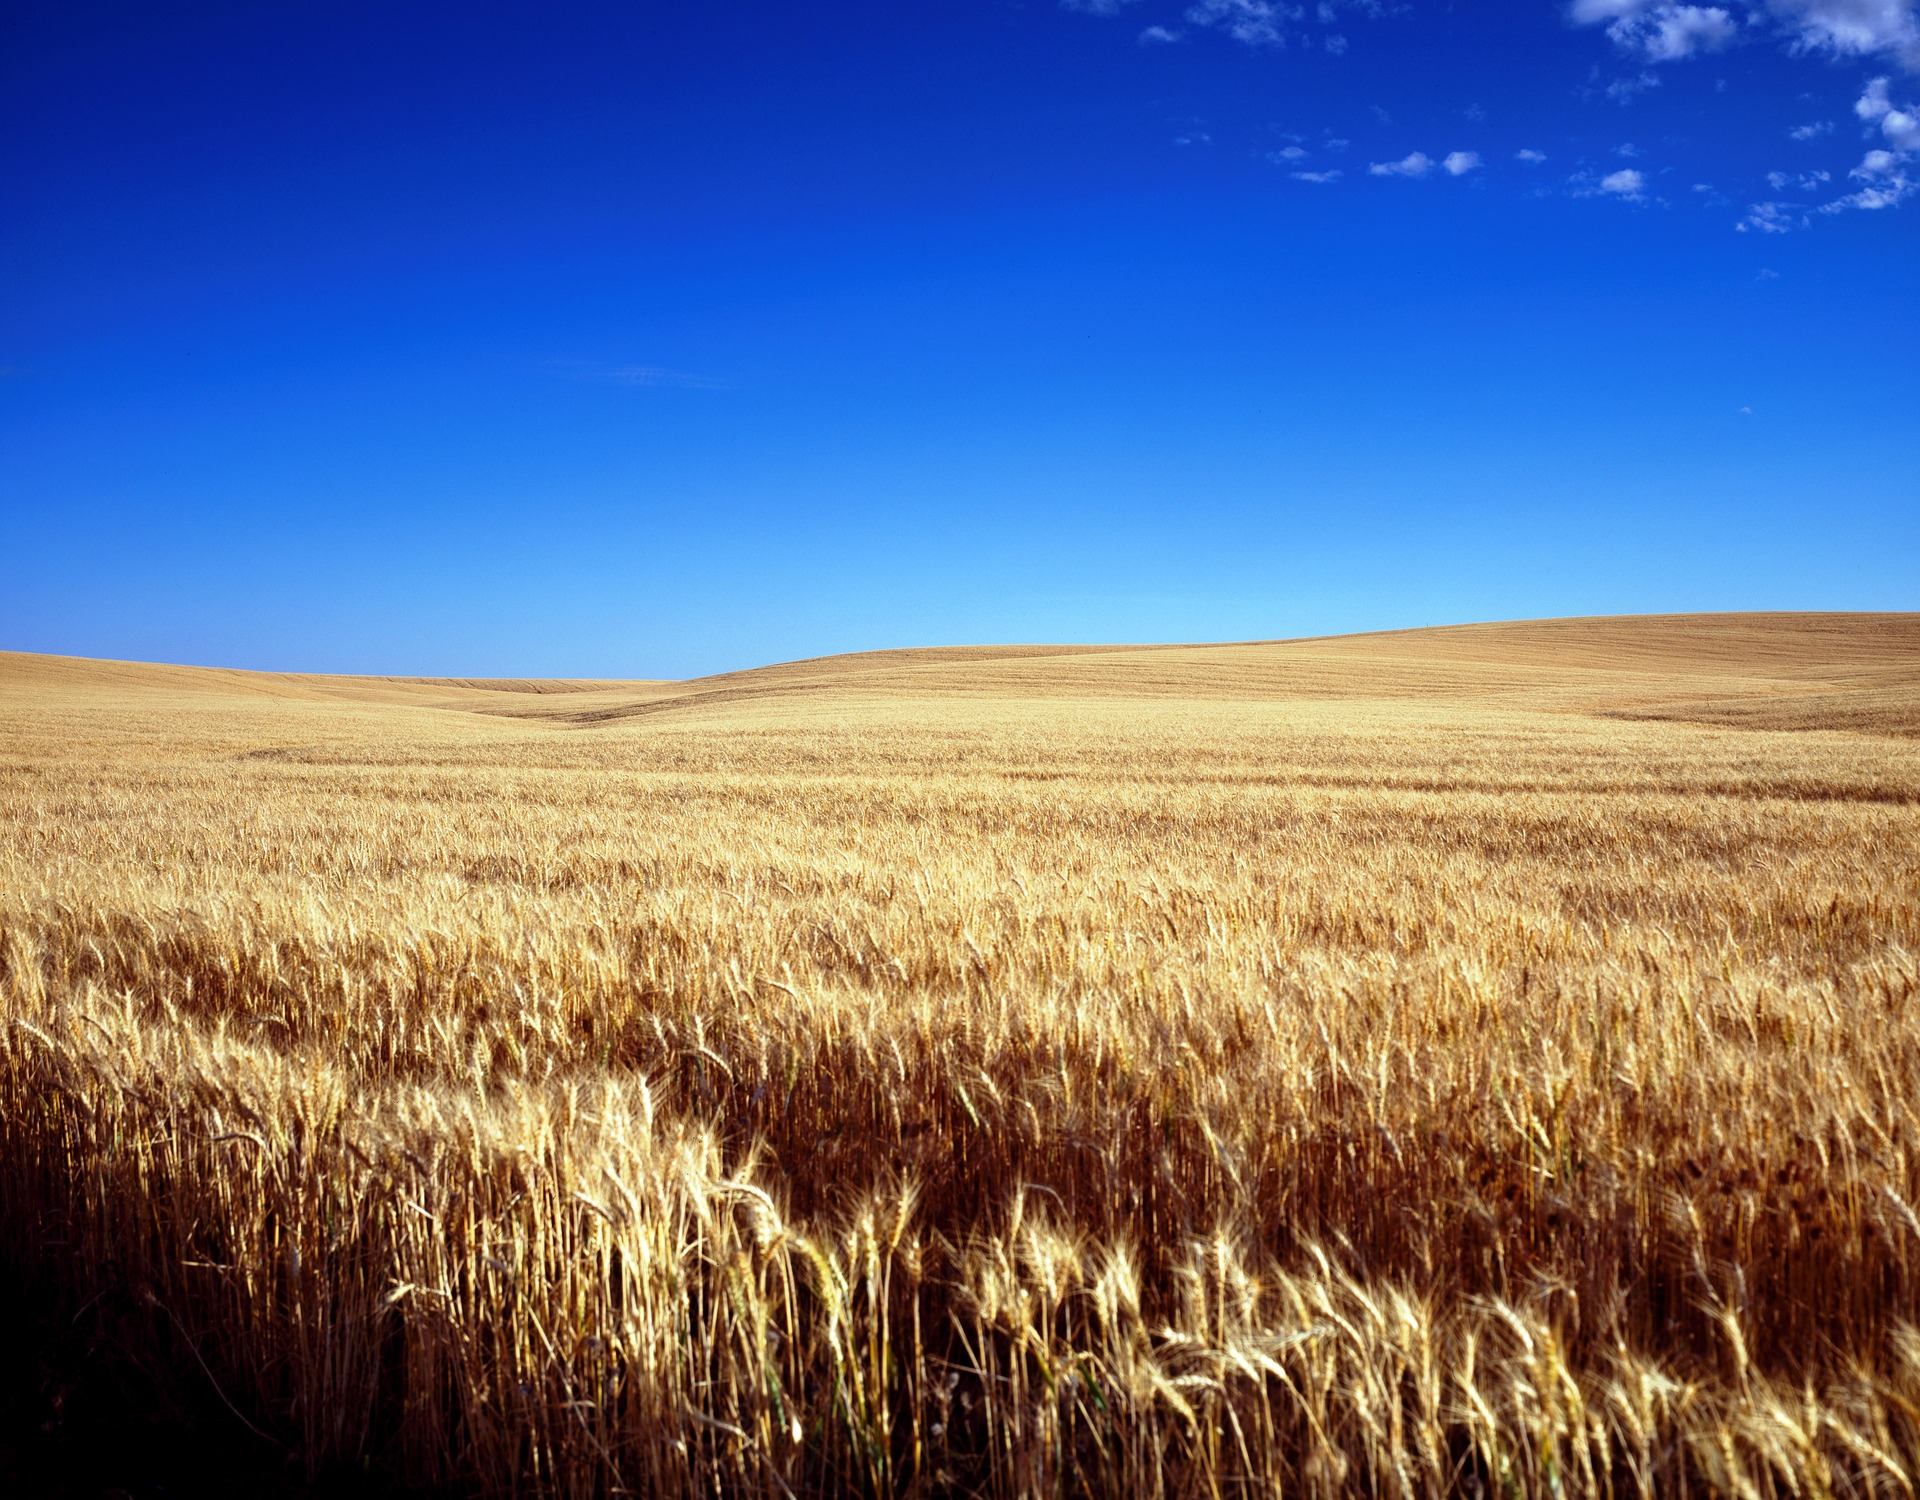 A clear blue sky over a seemingly endless Kansas wheat field.